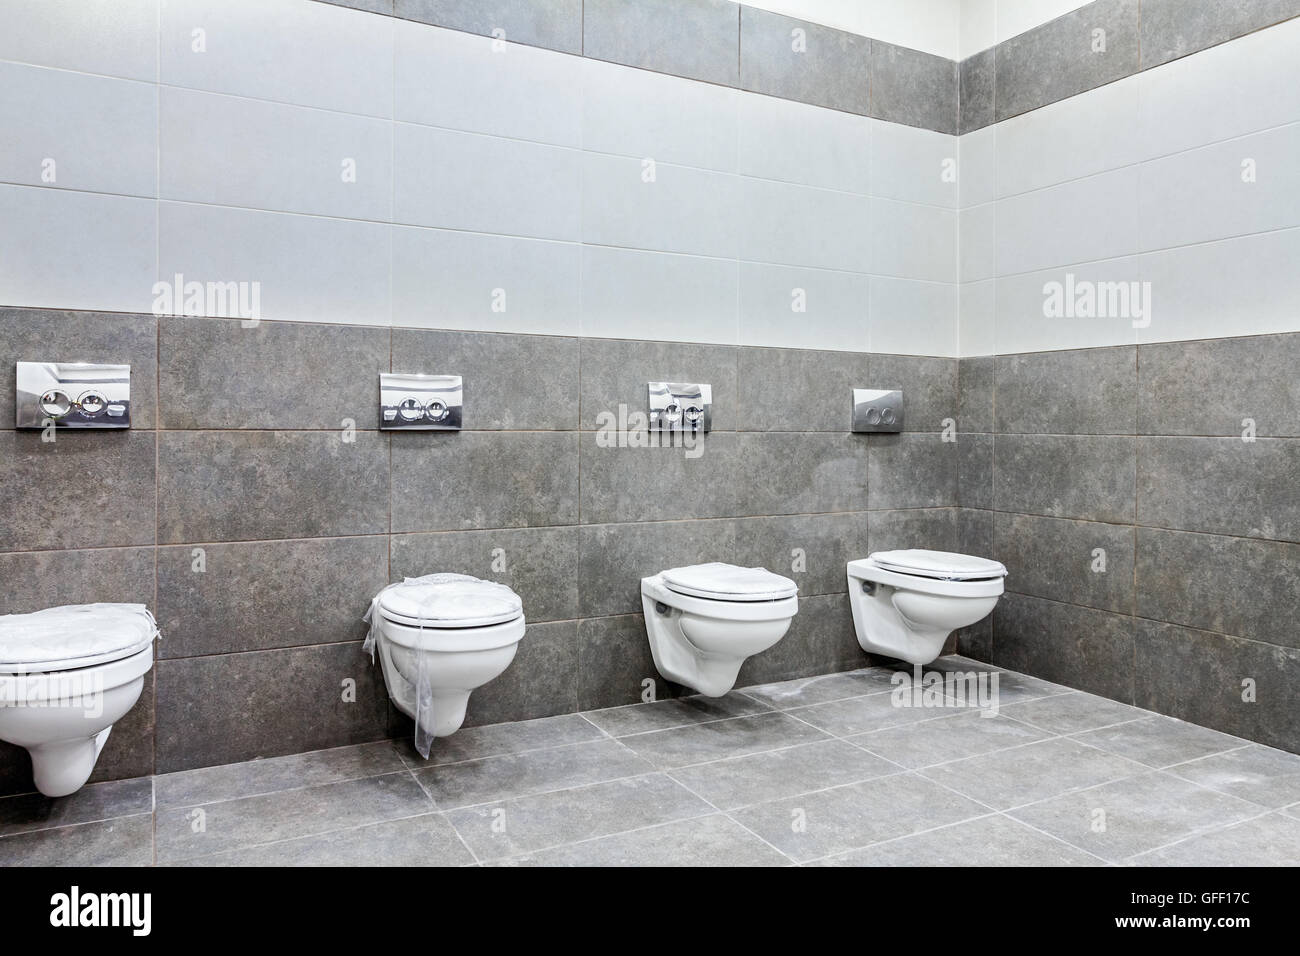 Modern designed of public toilet bowls lined up, no privacy. - Stock Image